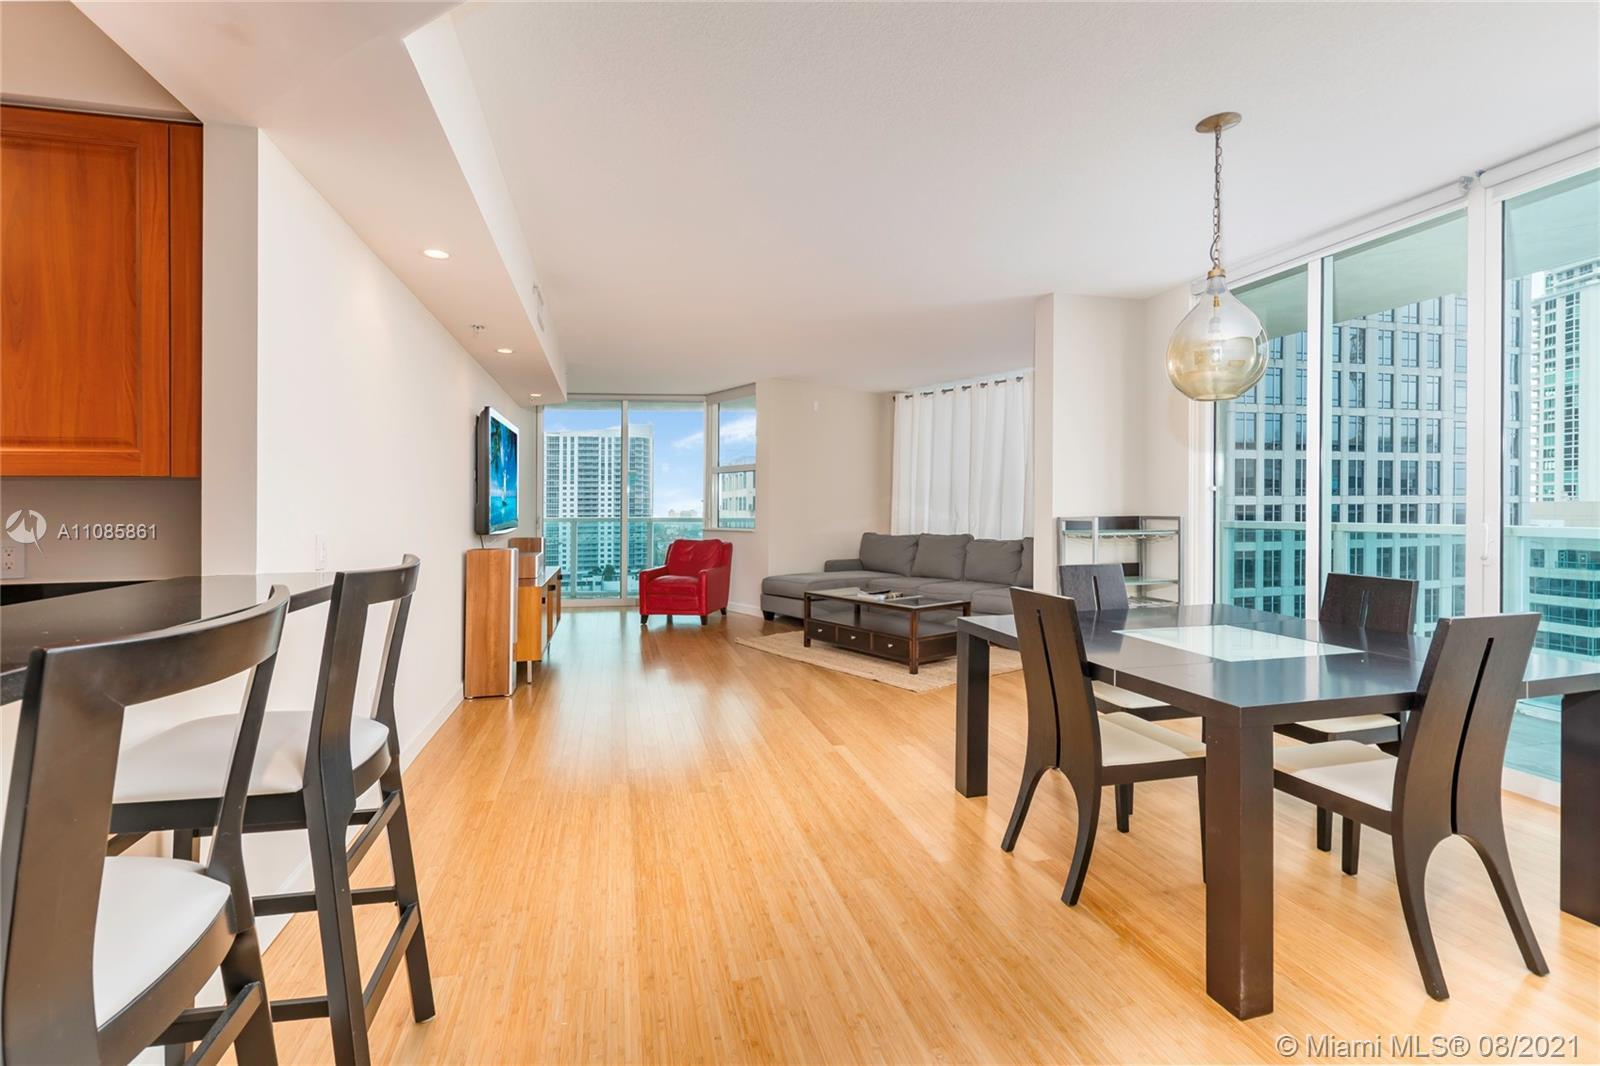 Amazing 30 Line corner unit - the most desirable line in the building. 2 Bed/2 Bath with spacious li